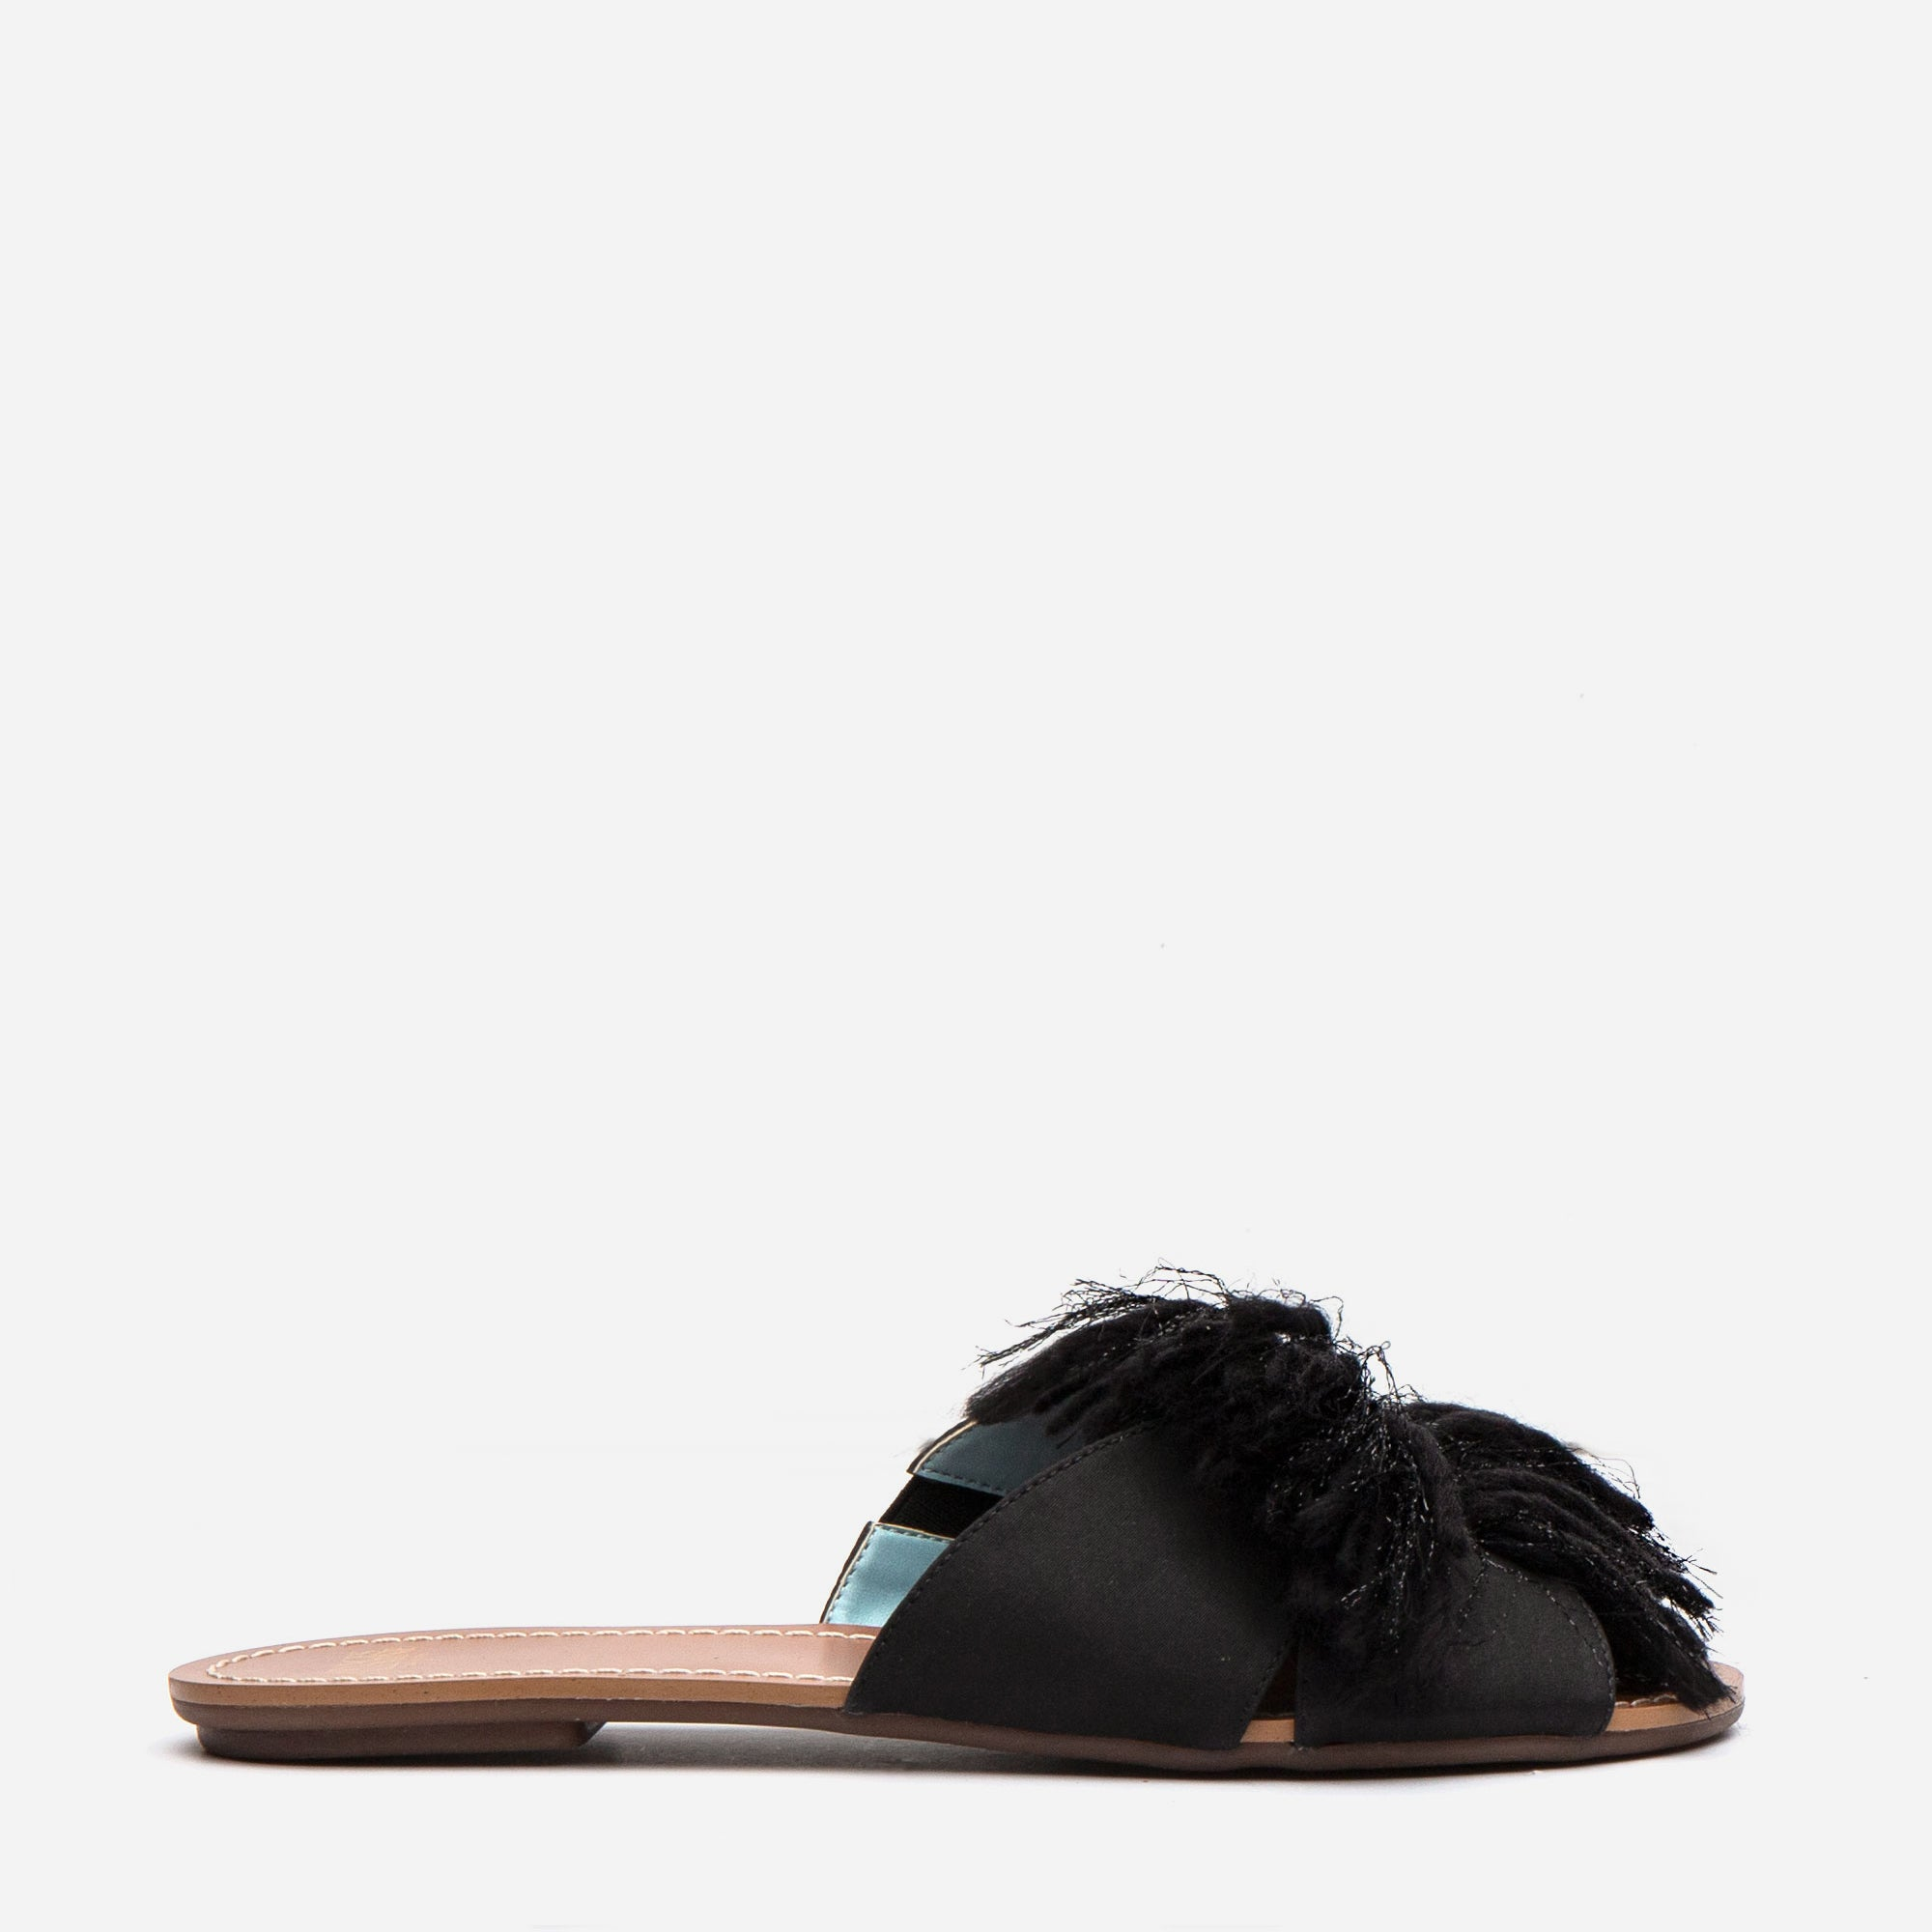 Trez Yarn Fringe Slide Black *FINAL SALE*